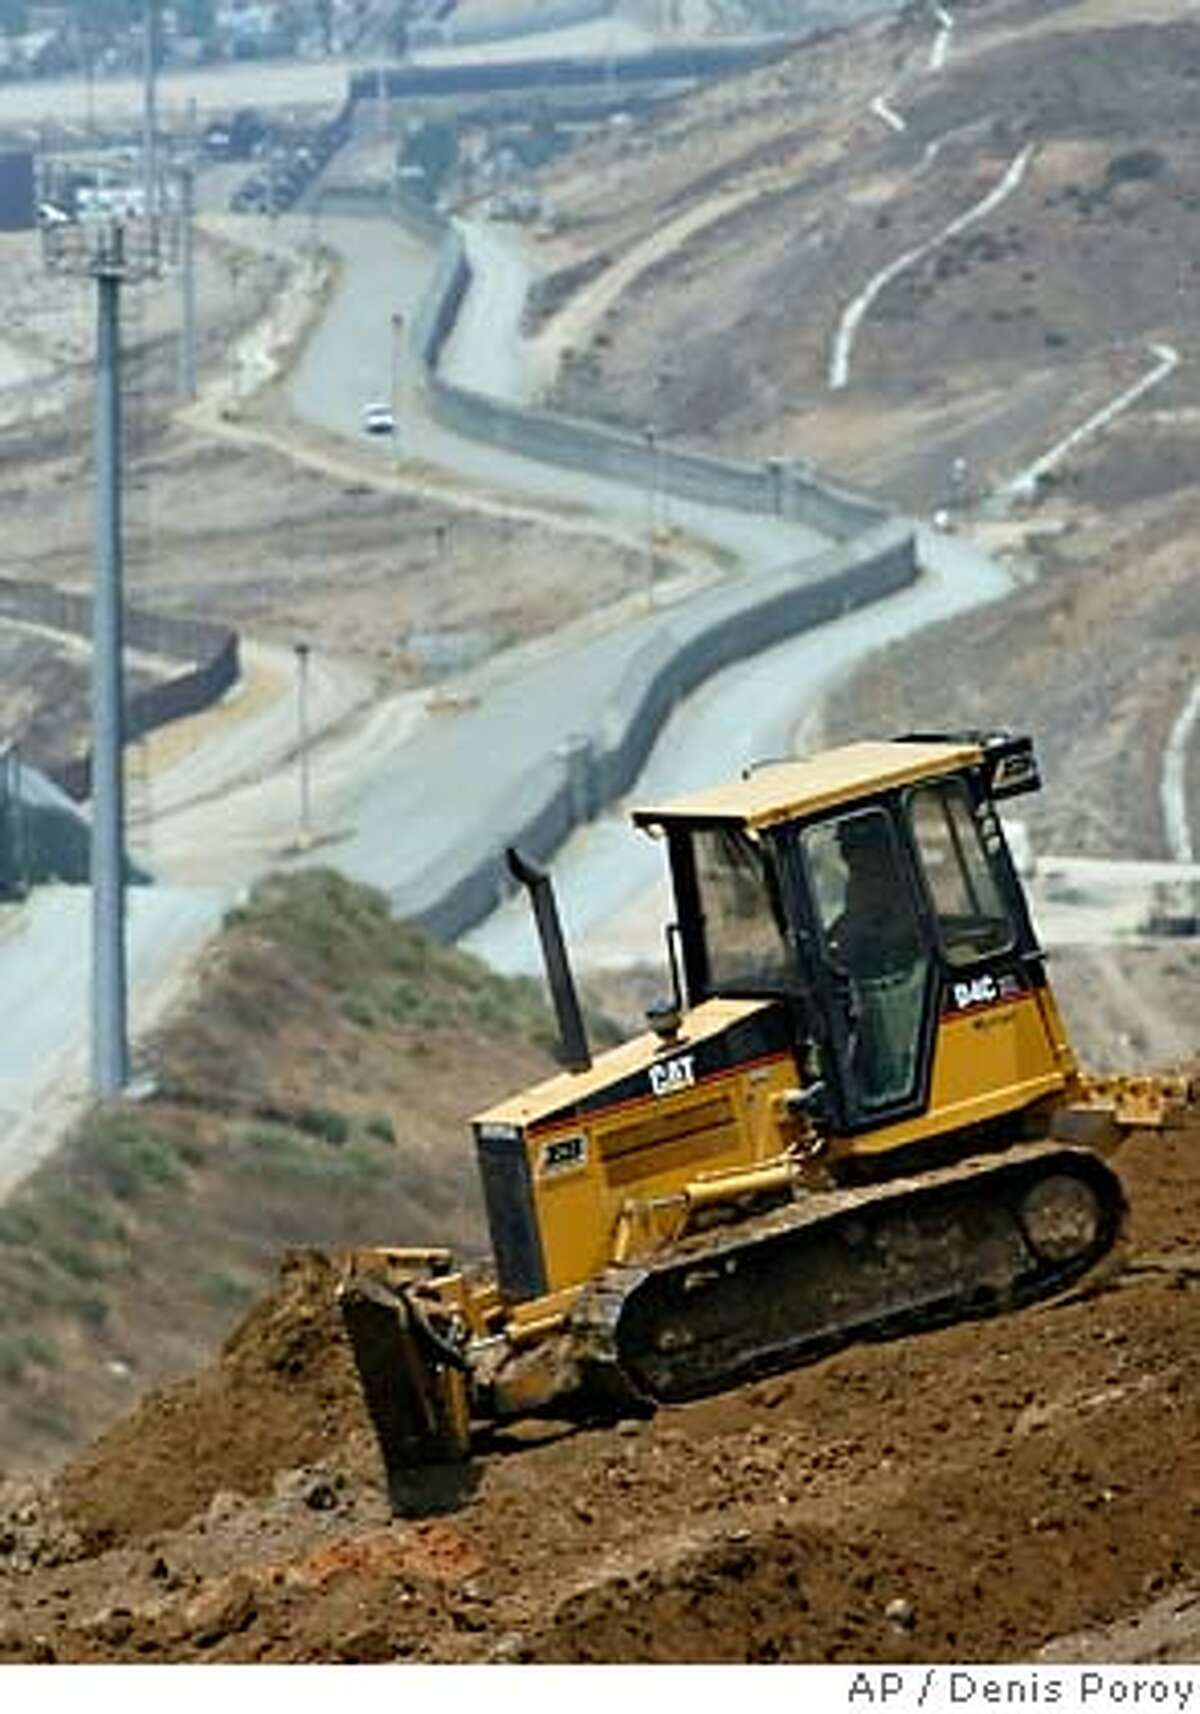 A California Army National Guardsman grades dirt with a tractor above the dual U.S.-Mexico border fences in San Diego, Wednesday, July 19, 2006. More than 900 California Army and Air National Guard personnel have reported for duty at Naval Base San Diego and are undergoing processing and training or have already taken up duties to augment federal agents along the U.S.-Mexico border in California. (AP Photo/Denis Poroy)